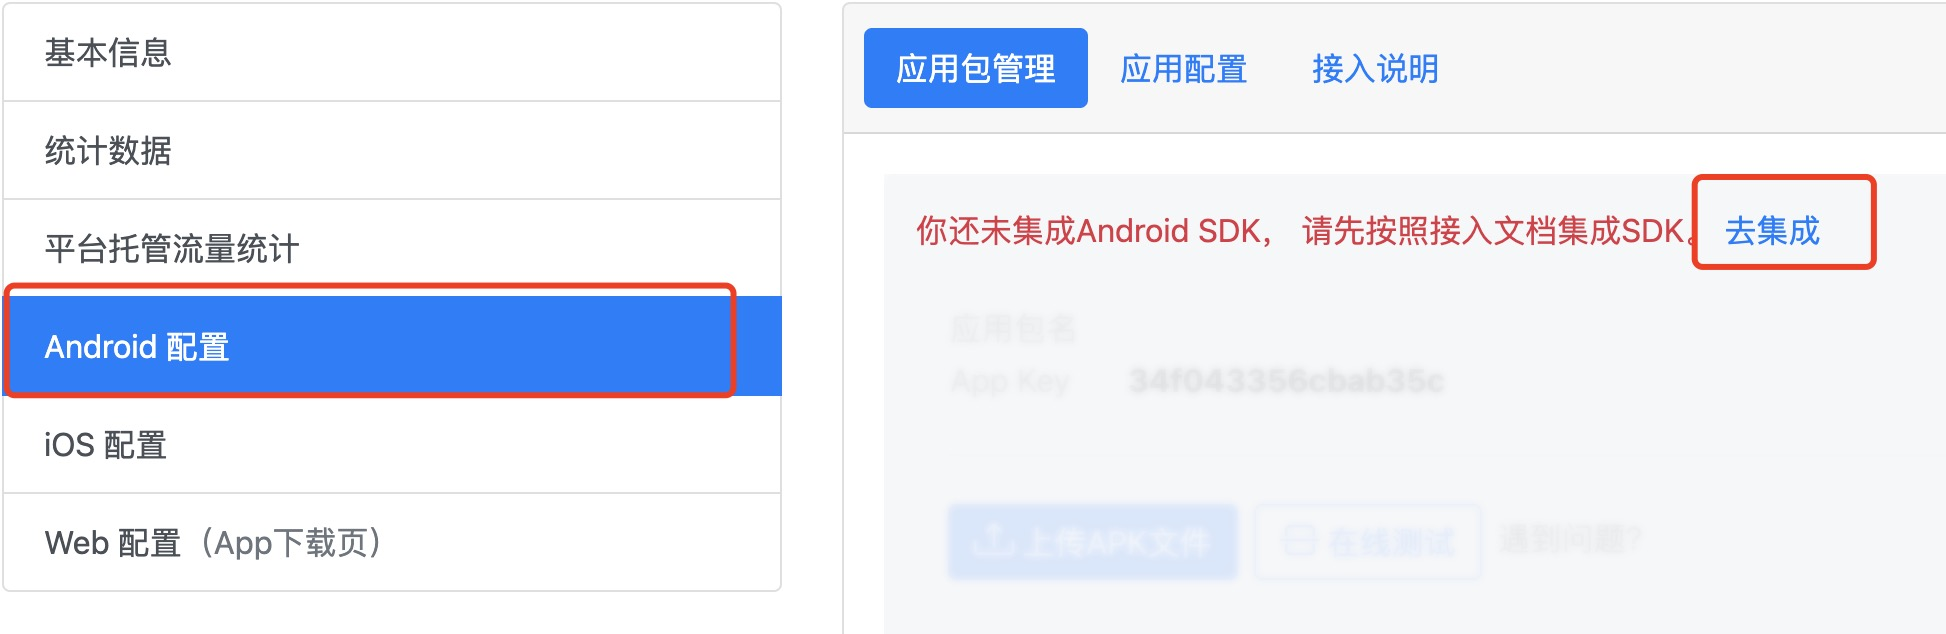 Android 配置